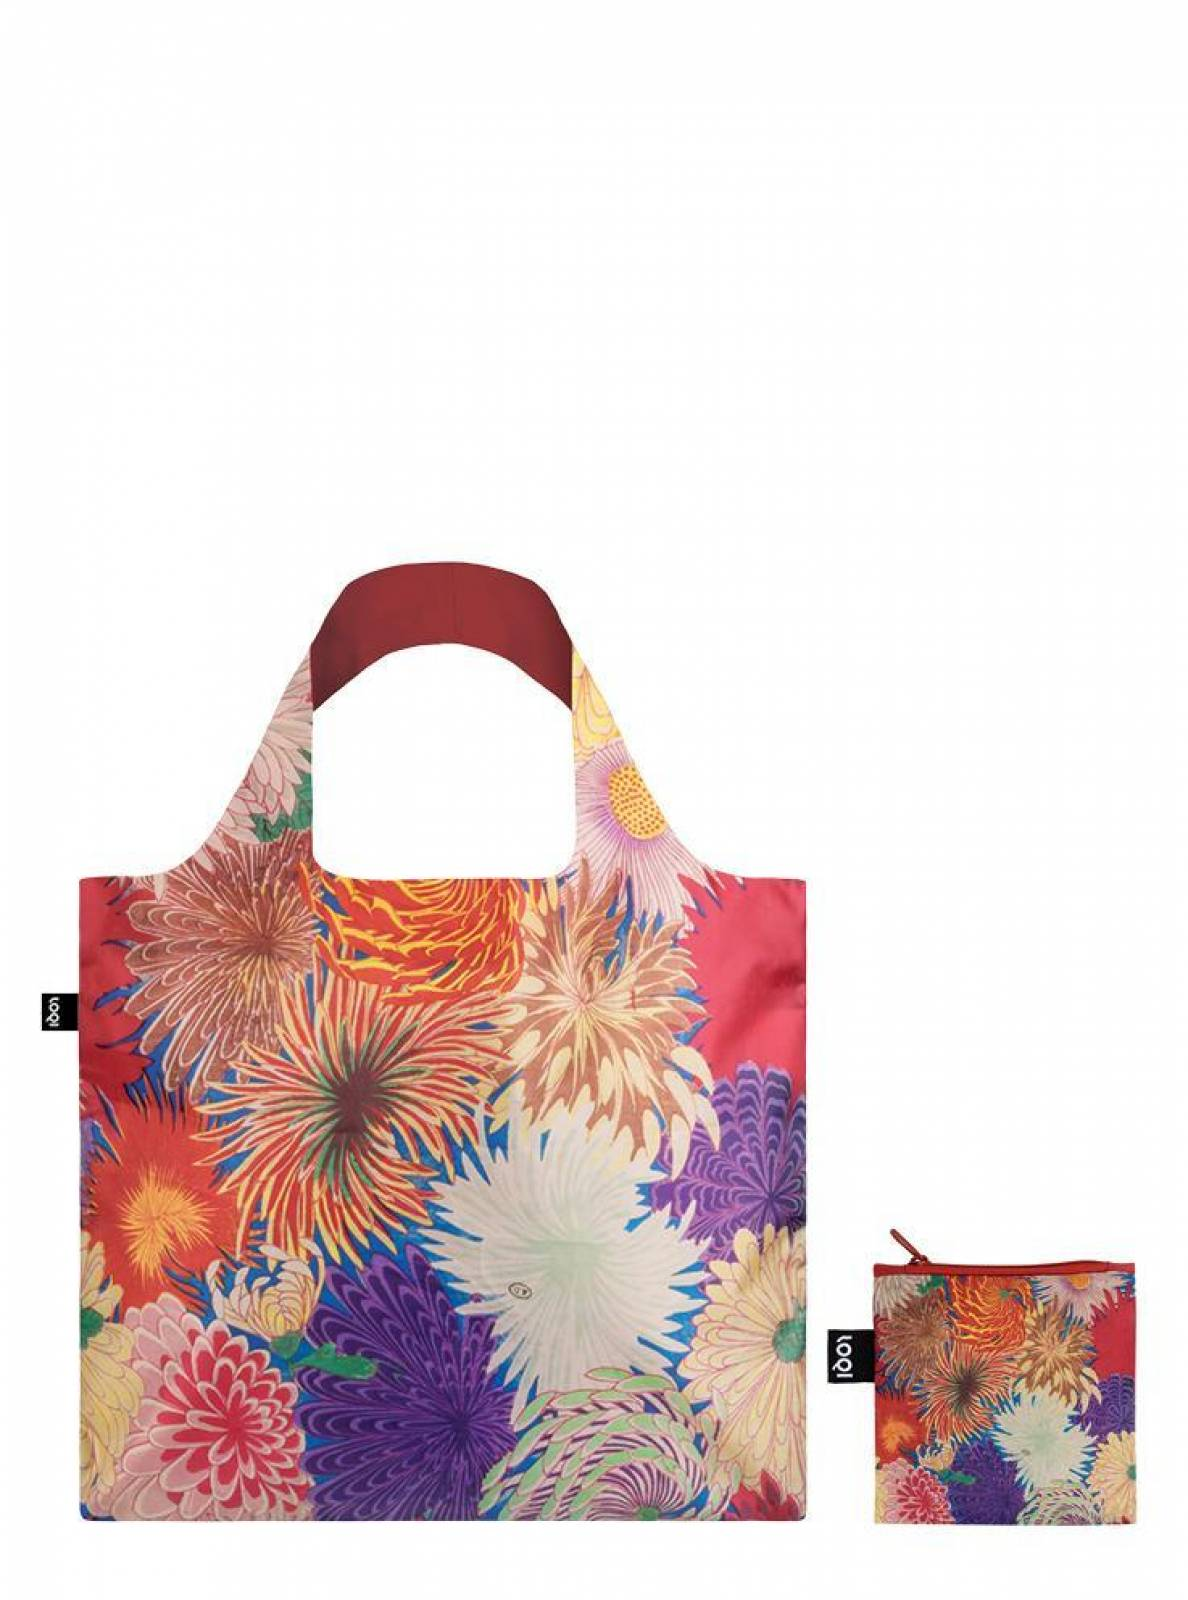 Japanese Chrysanthemum - Reusable Tote Bag With Pouch thumbnails